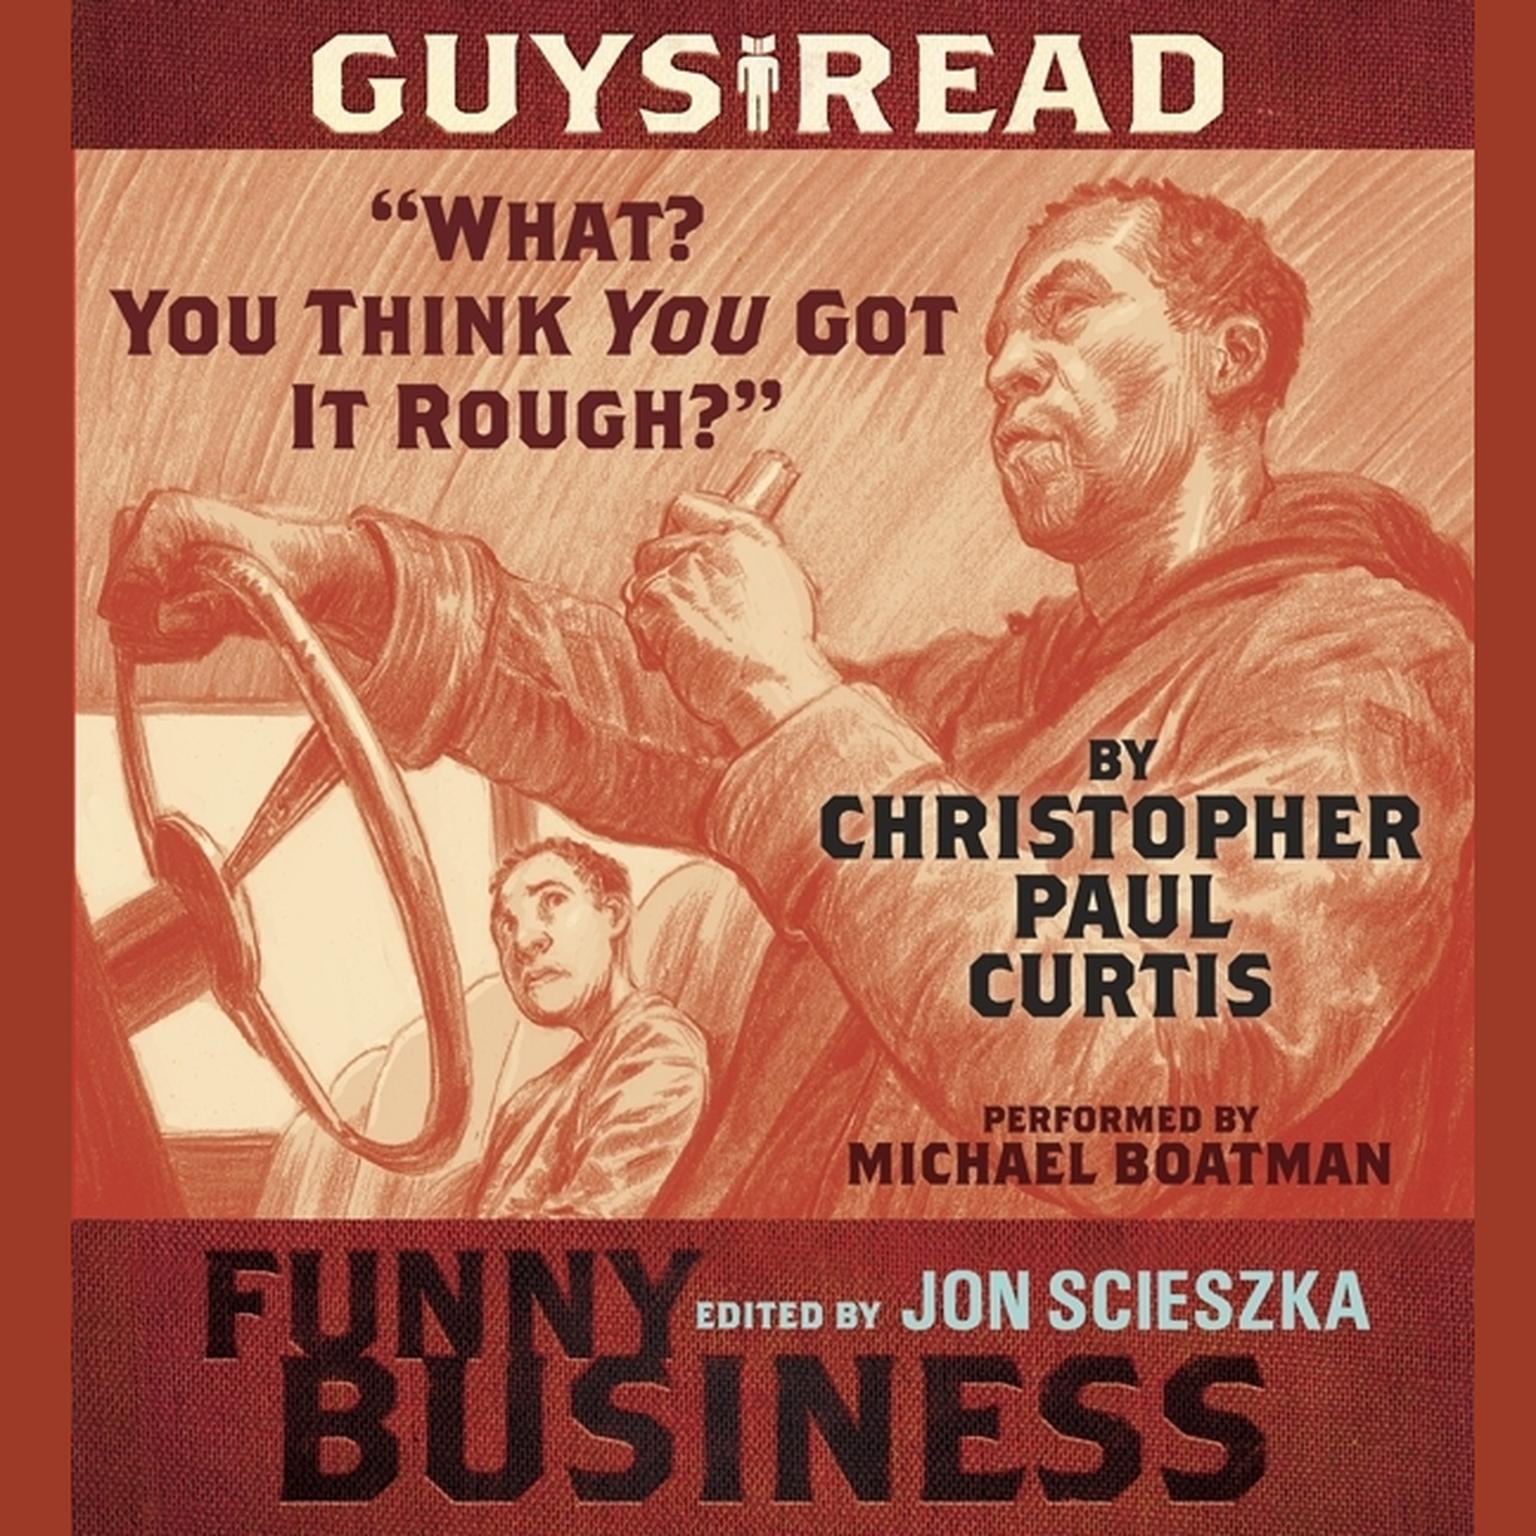 Printable Guys Read: 'What? You Think You Got It Rough?': A Story from Guys Read: Funny Business Audiobook Cover Art